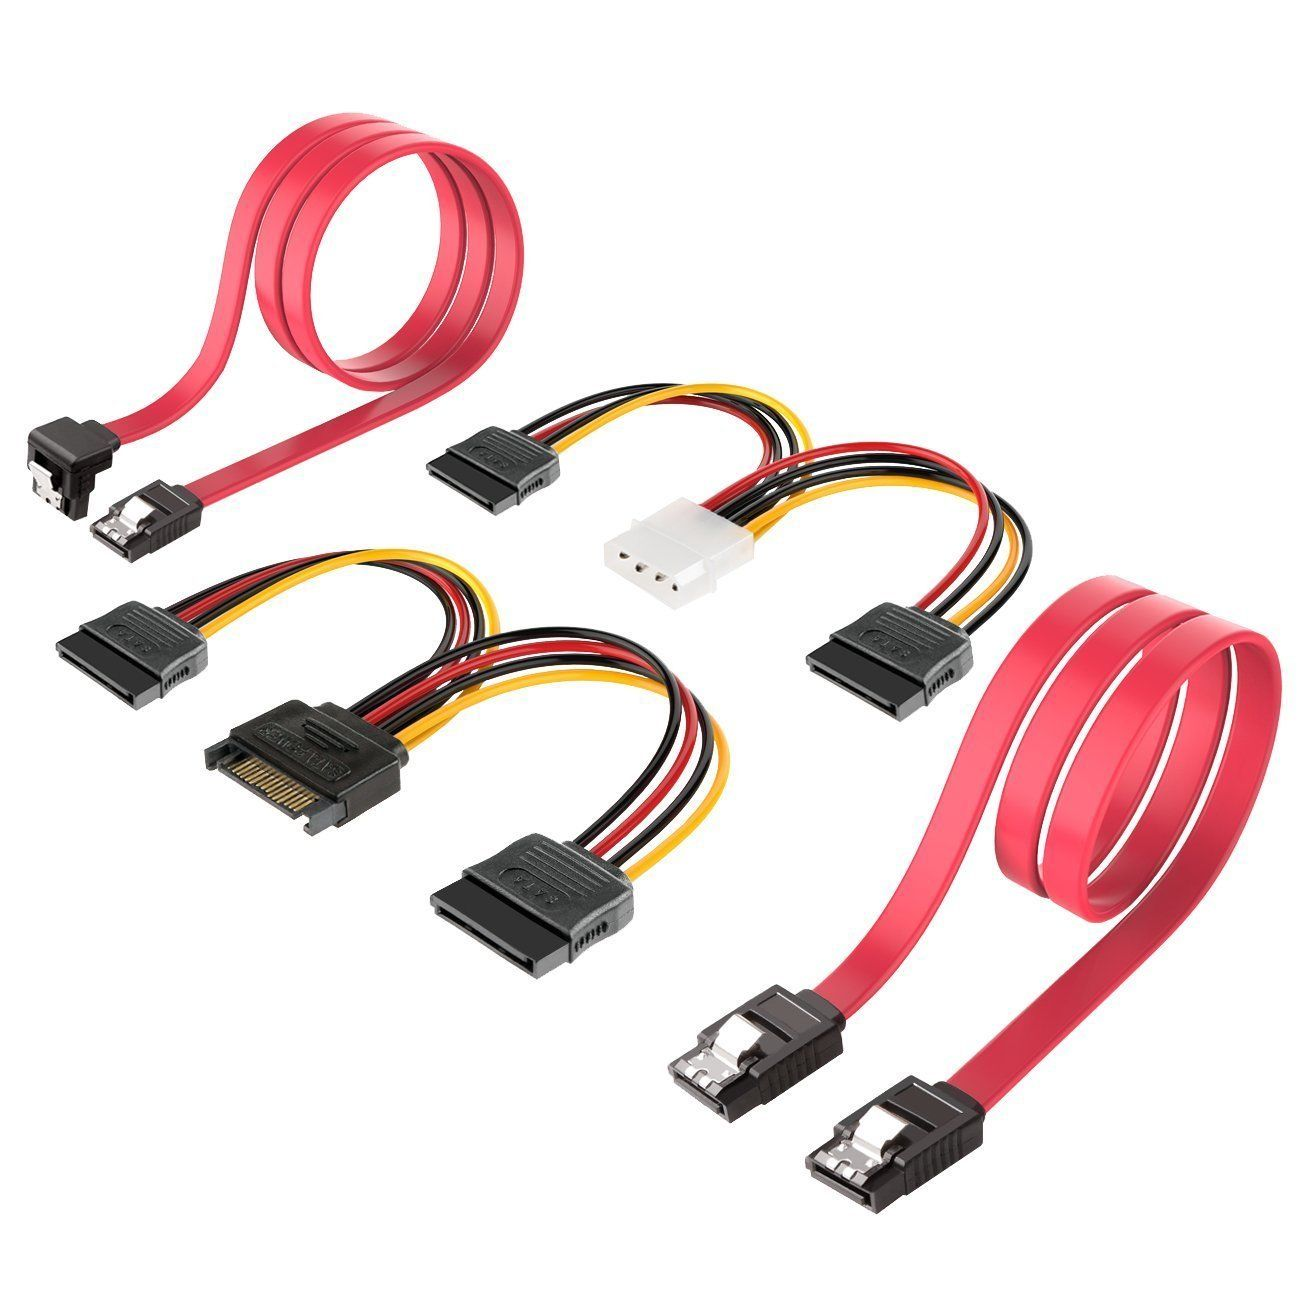 Inateck SSD / SATA III Hard Drive Connection Cables, 4 Pack(ST1003)